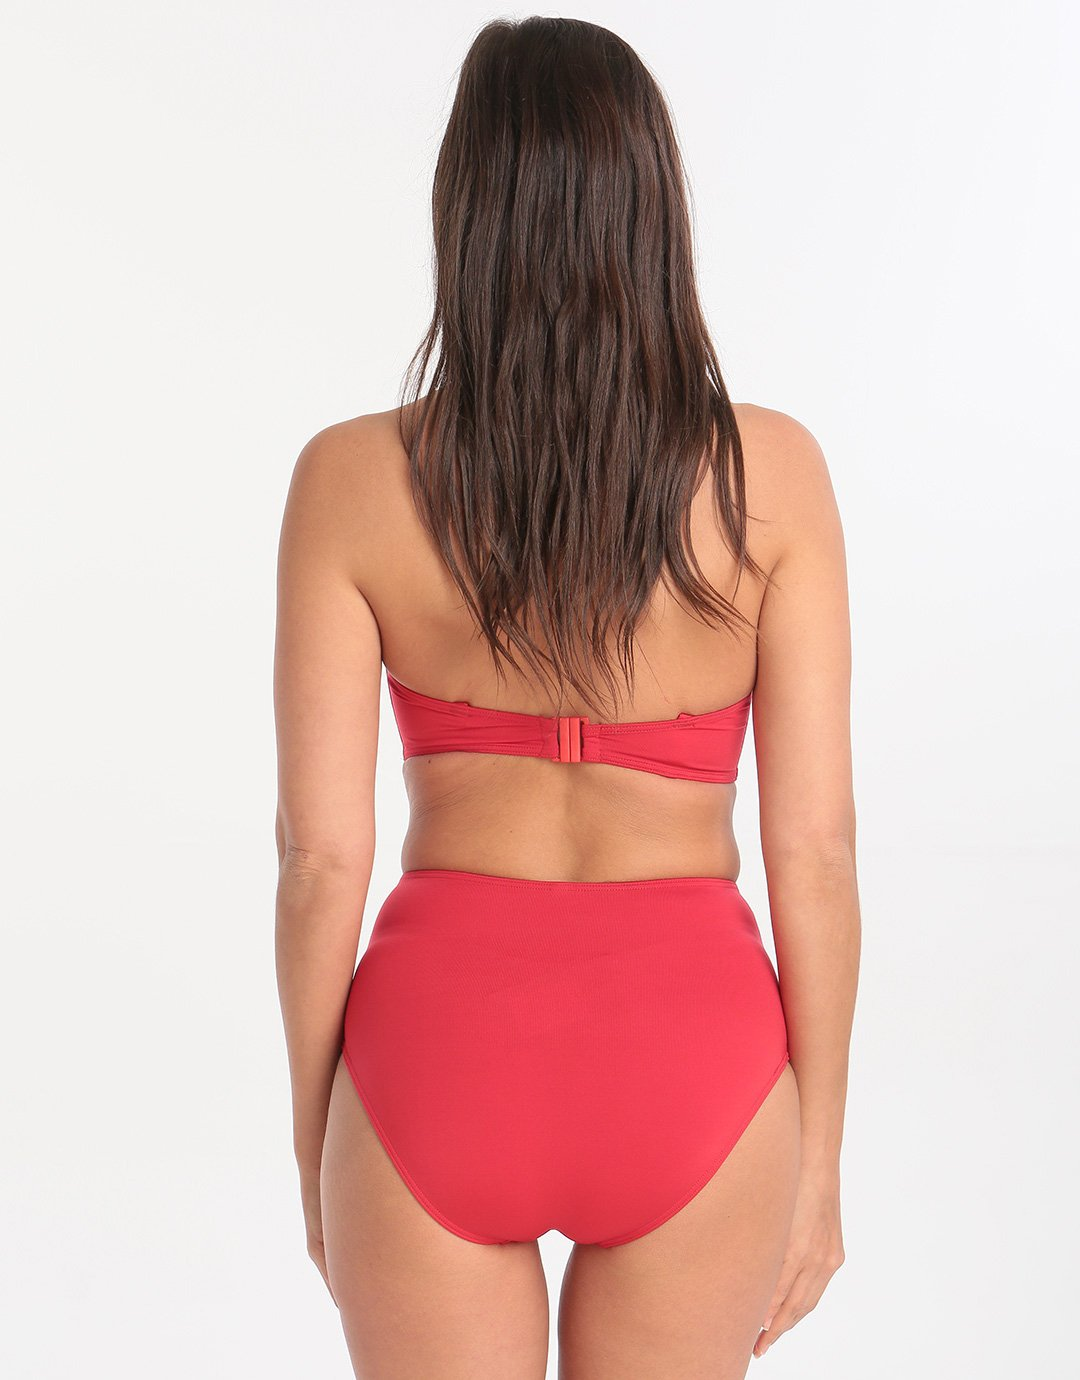 Lepel London Beach Chic Moulded Longline Bikini Top - Red